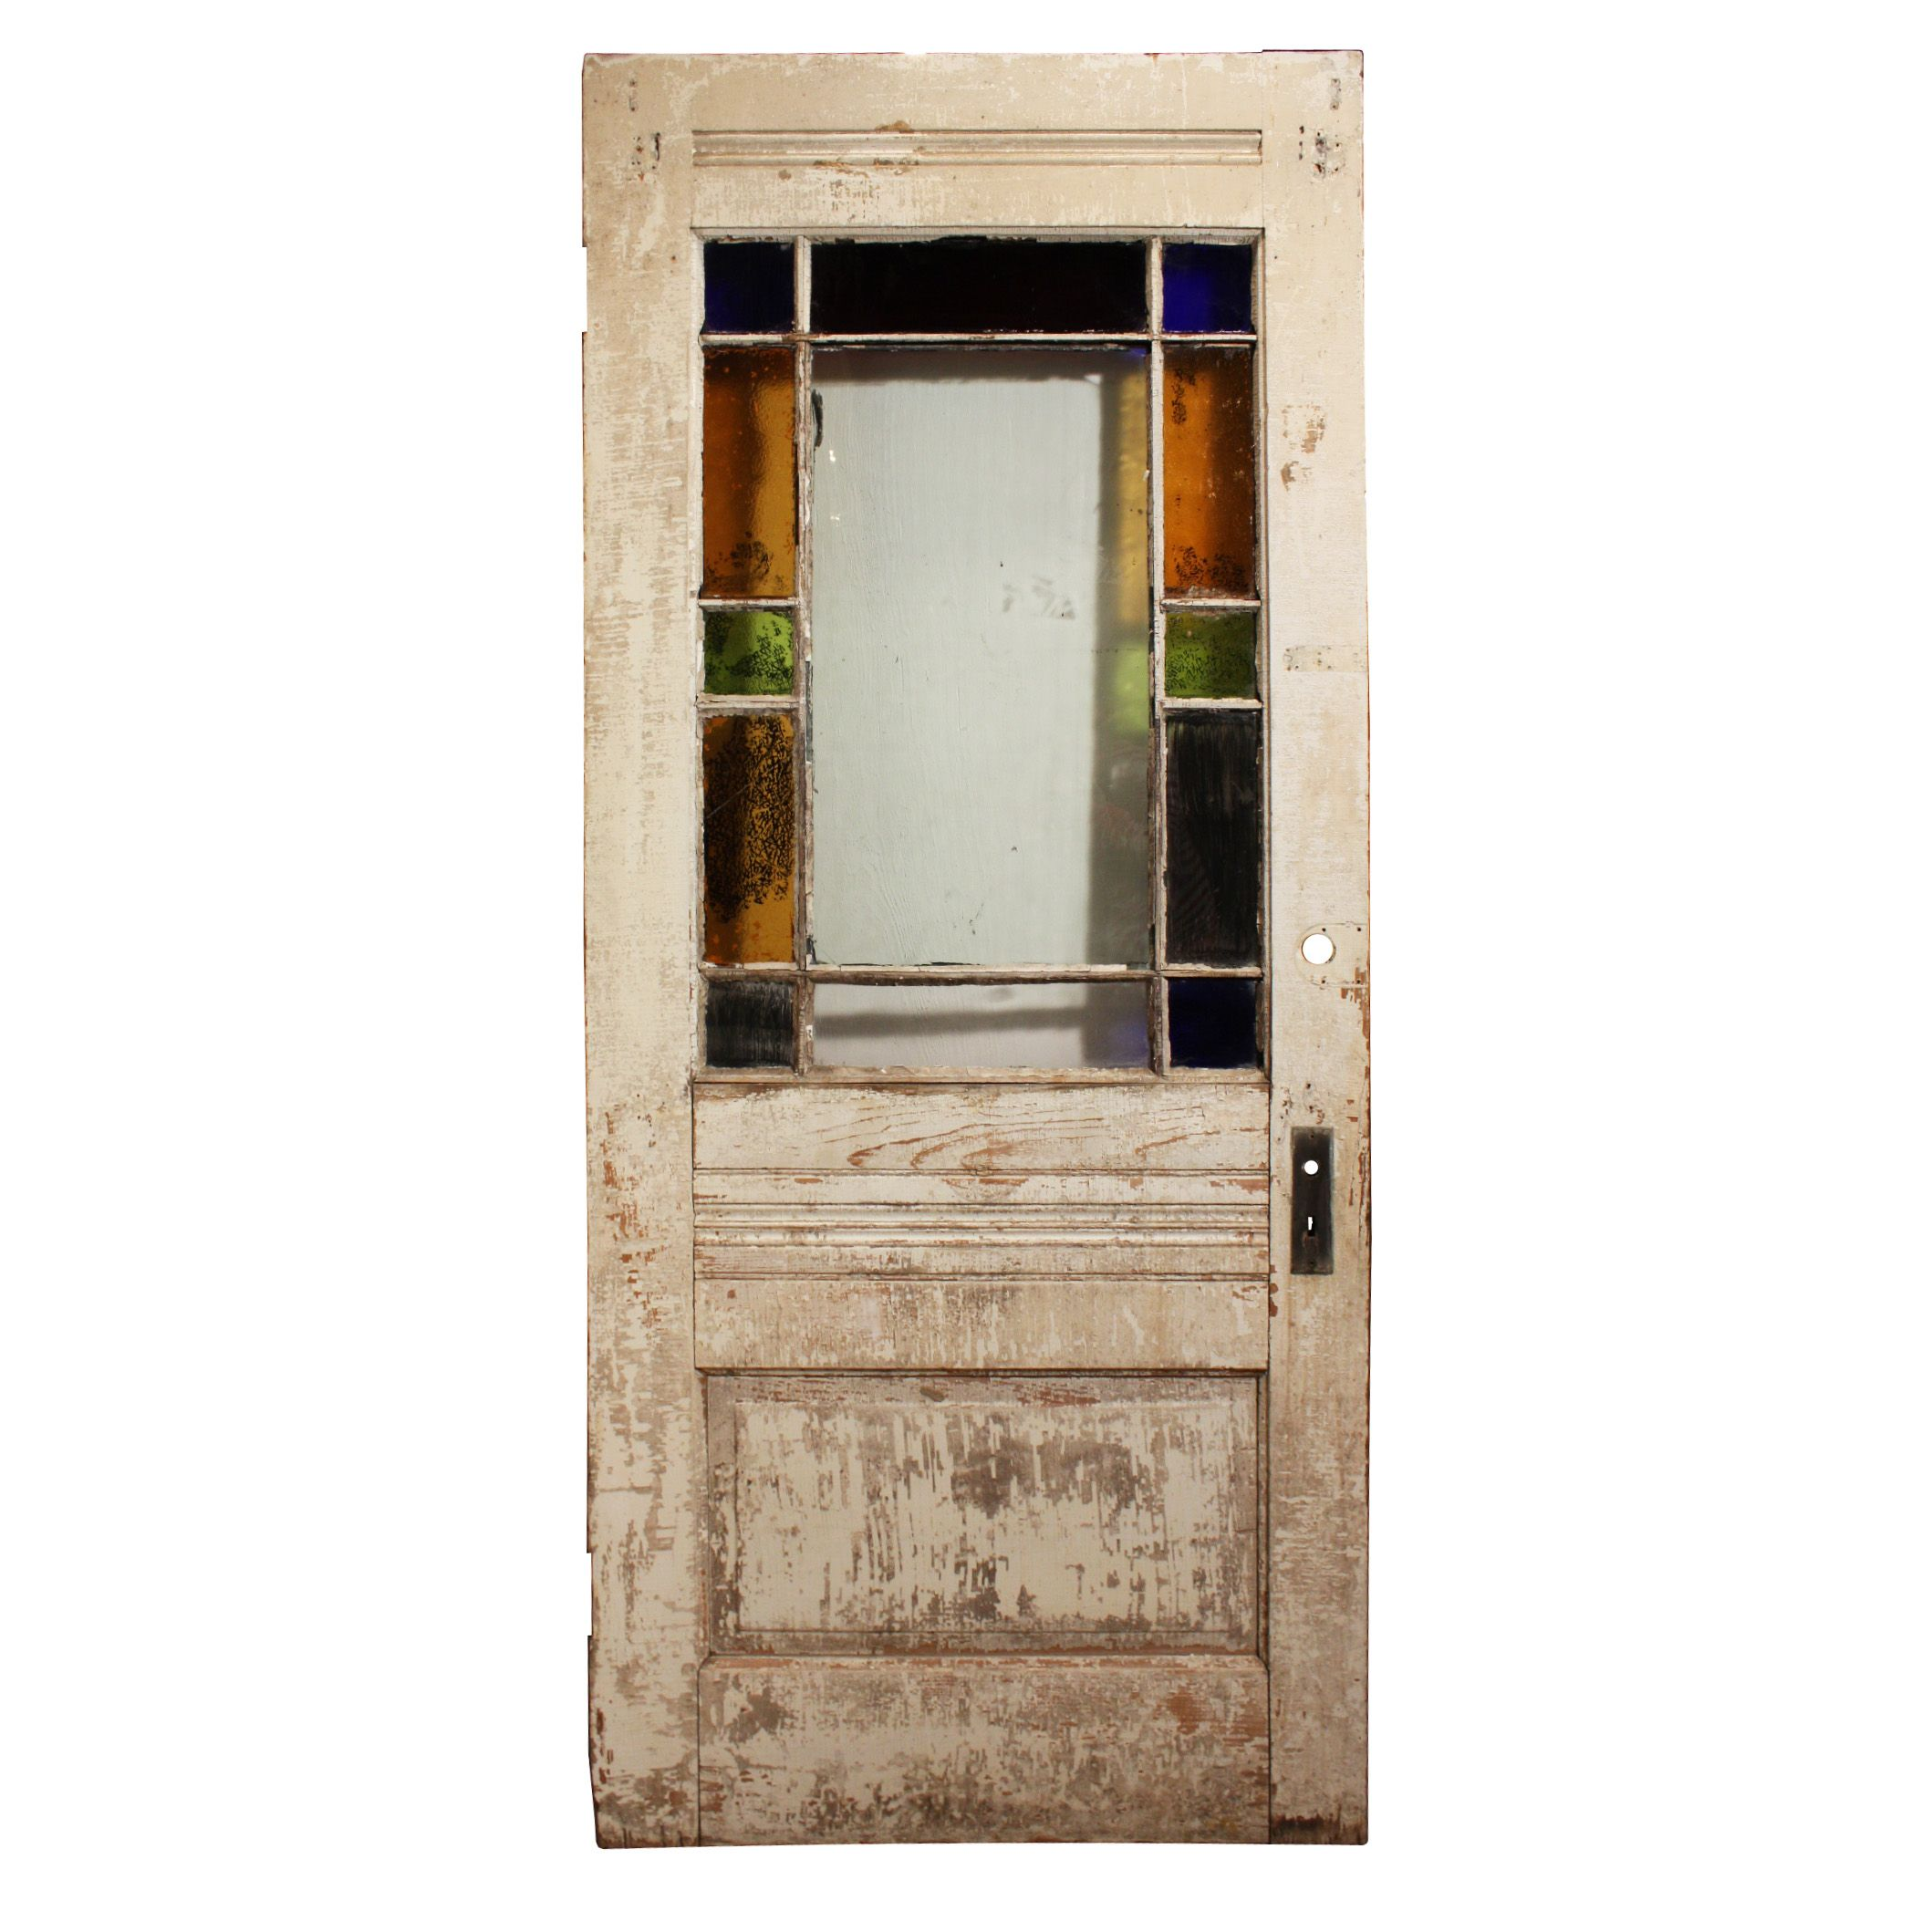 A Wonderful Antique Exterior Door Featuring Stained Glass Border And Lower Central Panel With Carved Wheat Stalk Medallion Dating From The